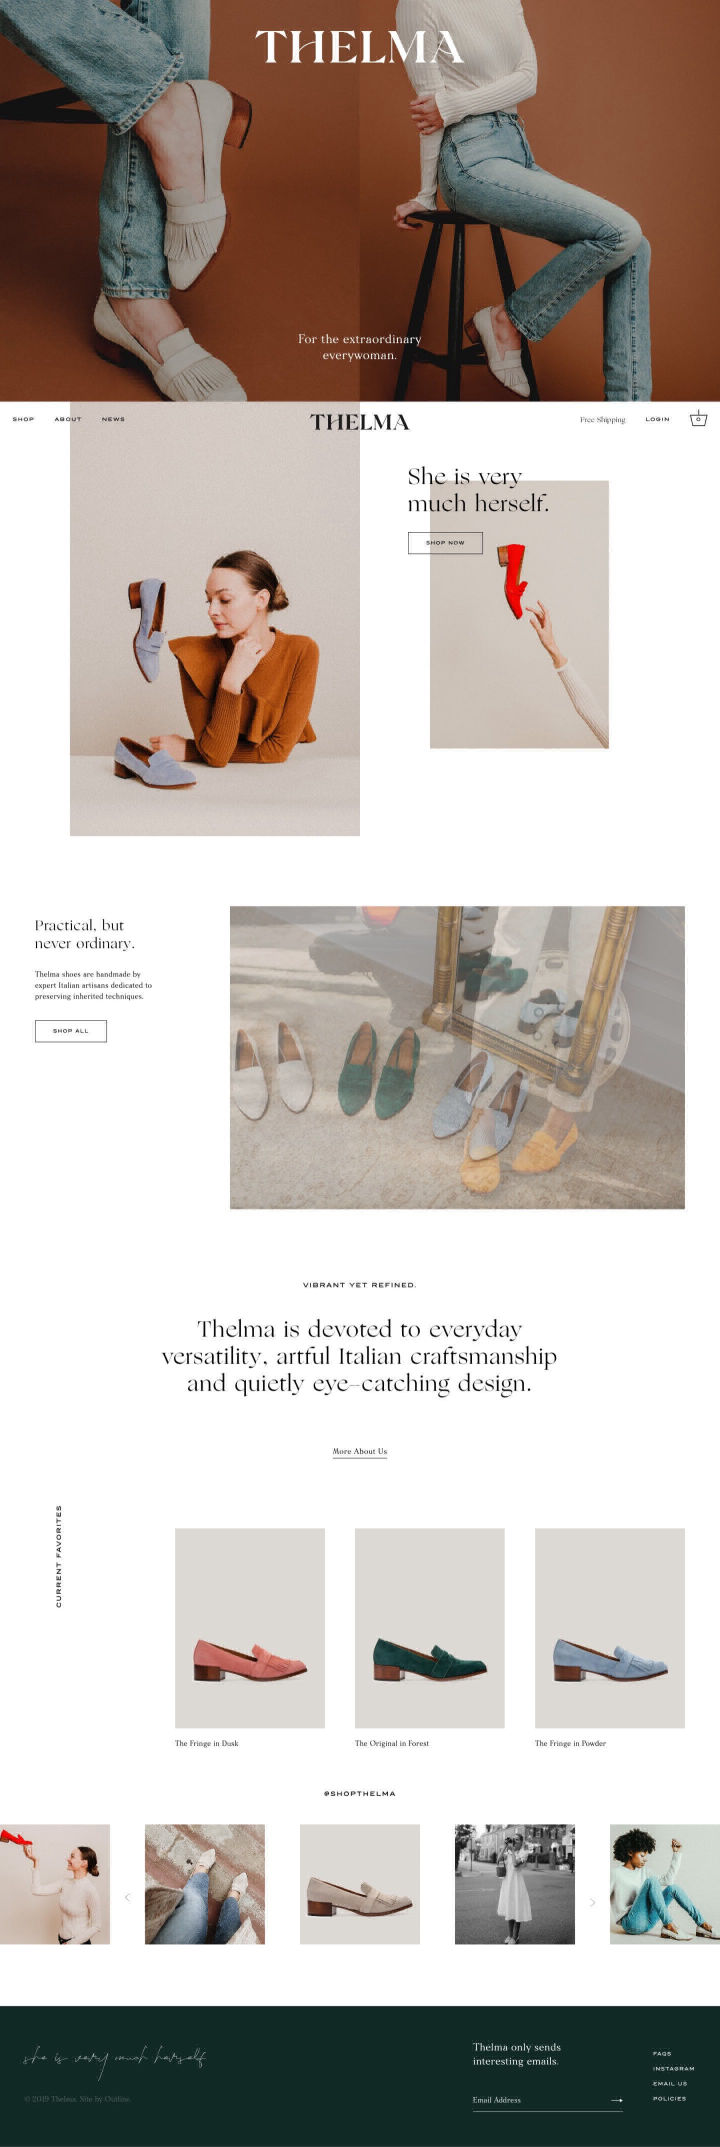 Thelma Shoes